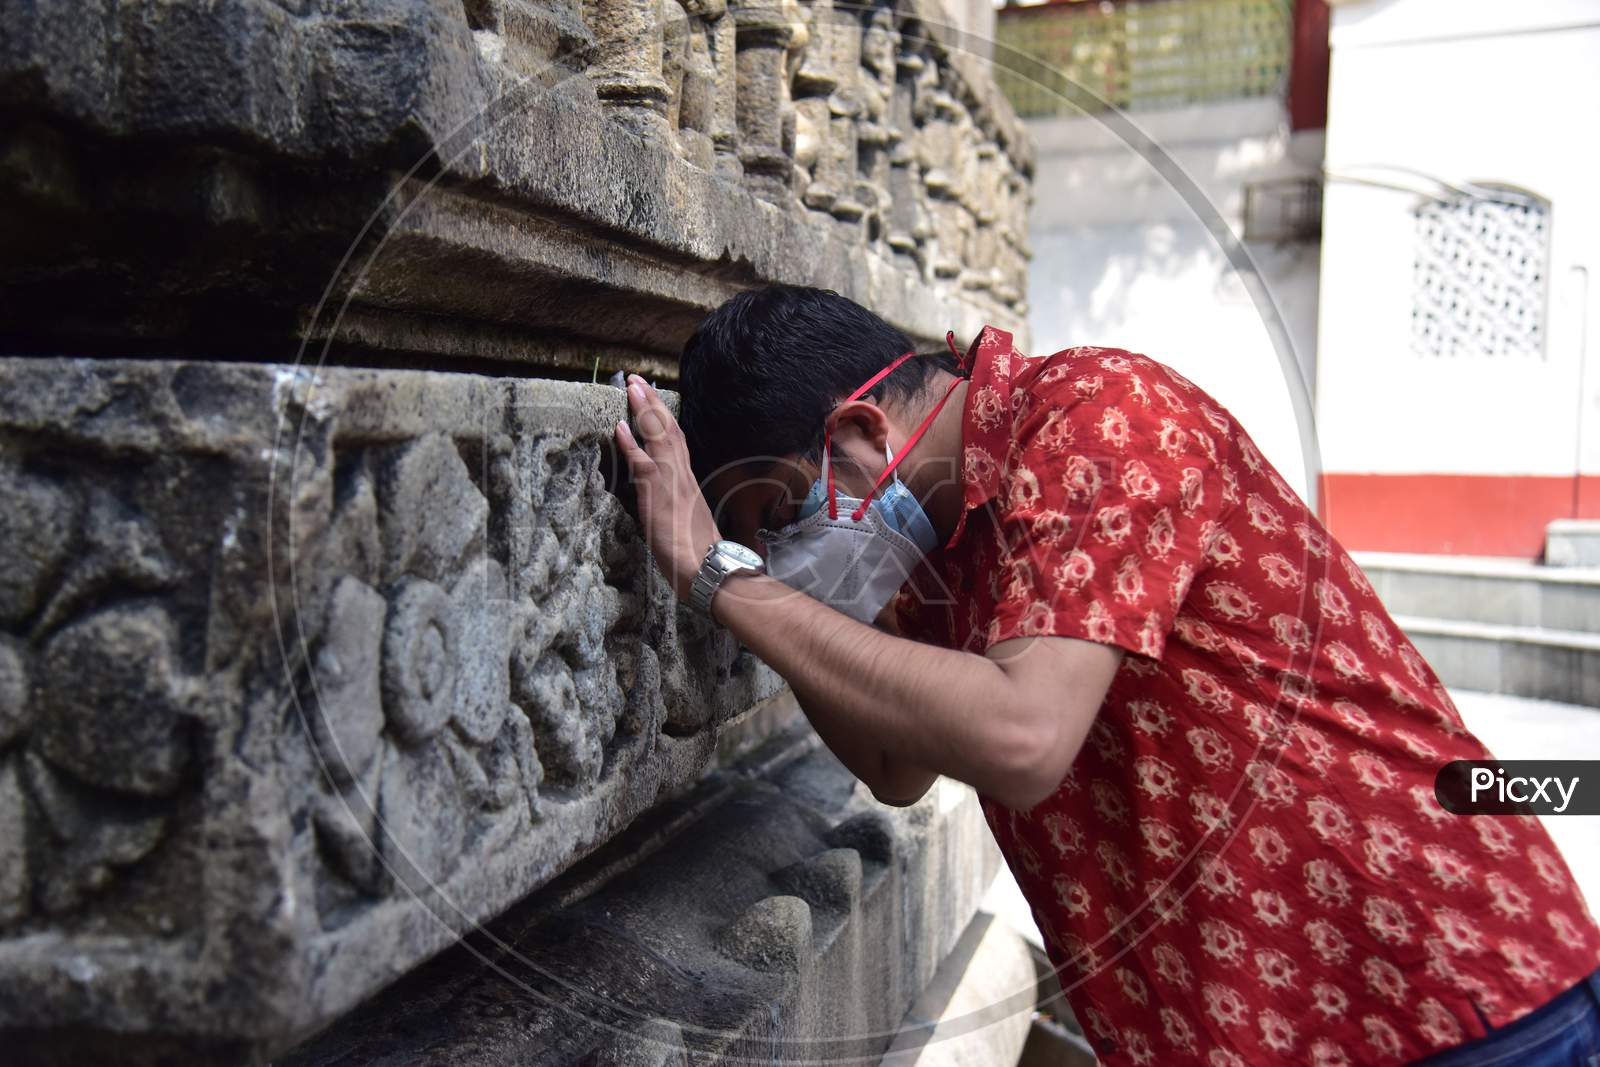 Indian devotees offer prayers by touching the Kamakhya temple after re-opens for public after a gap of nearly six months due to coronavirus lockdown with certain restrictions, in Guwahati, India on October 11, 2020.